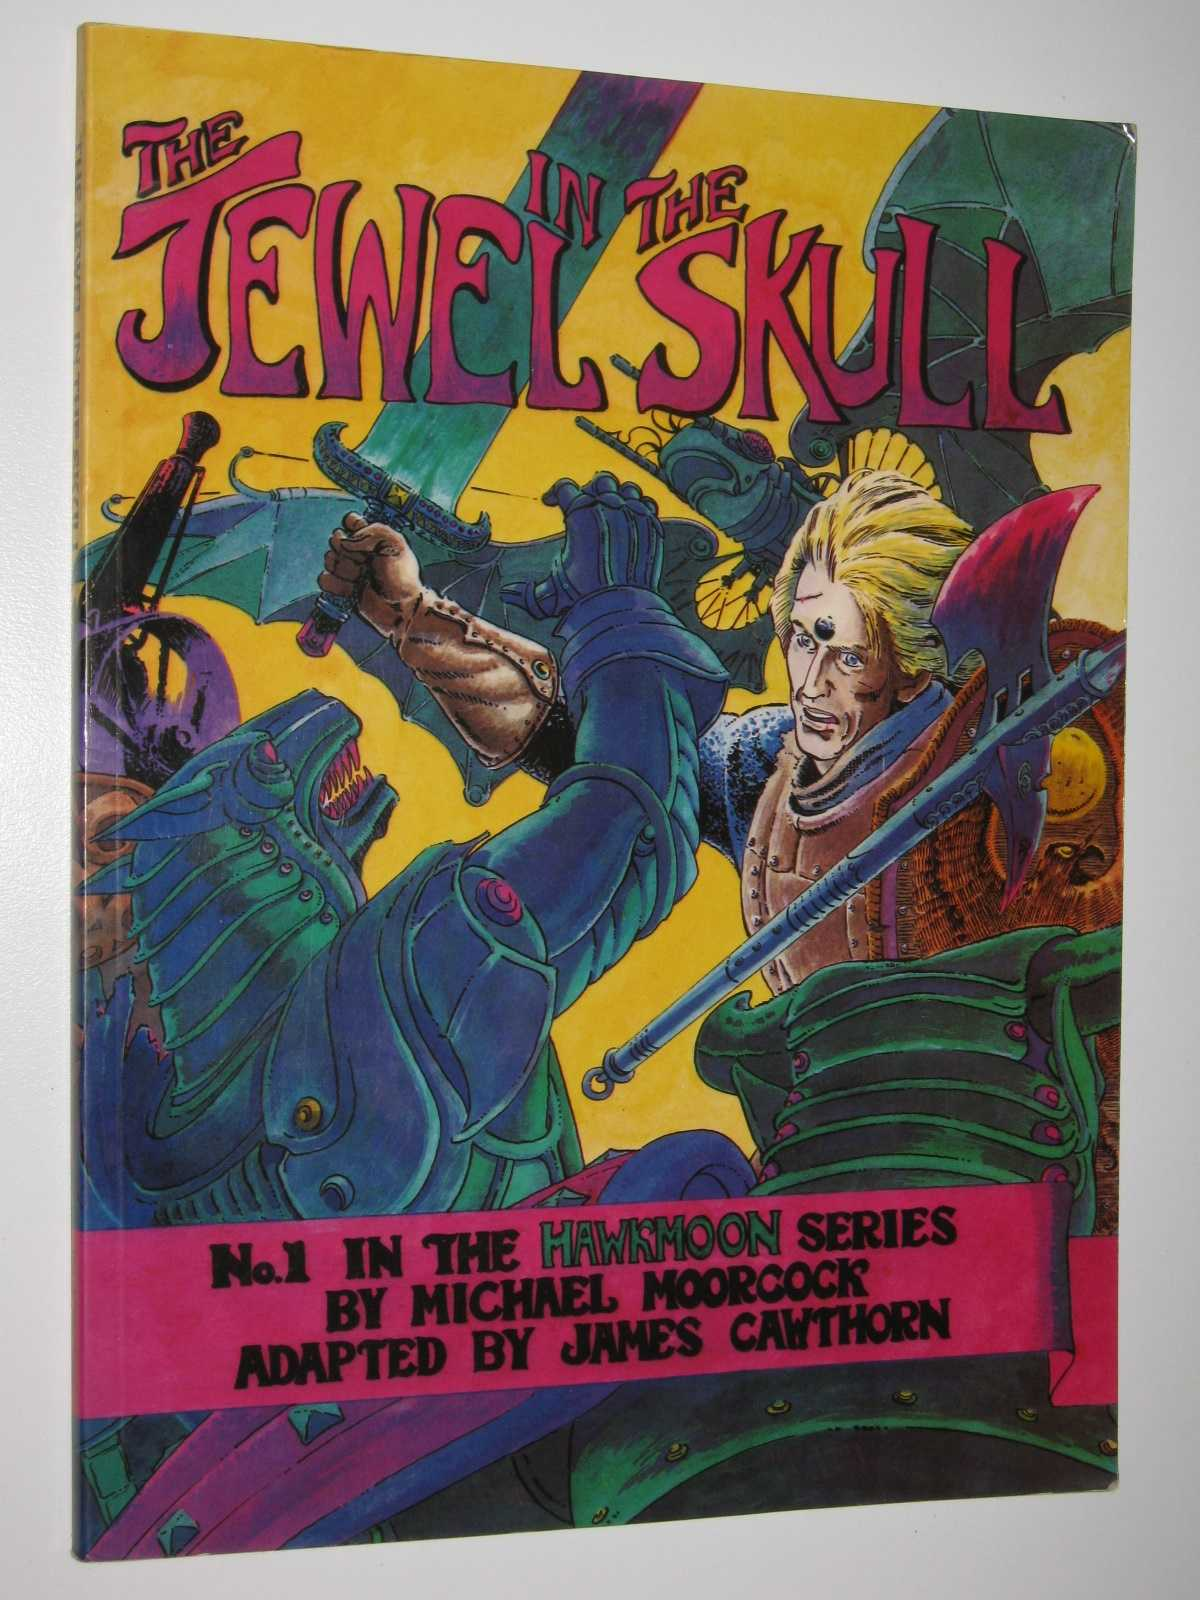 The Jewel in the Skull, Cawthorn, Jim (adapted by)